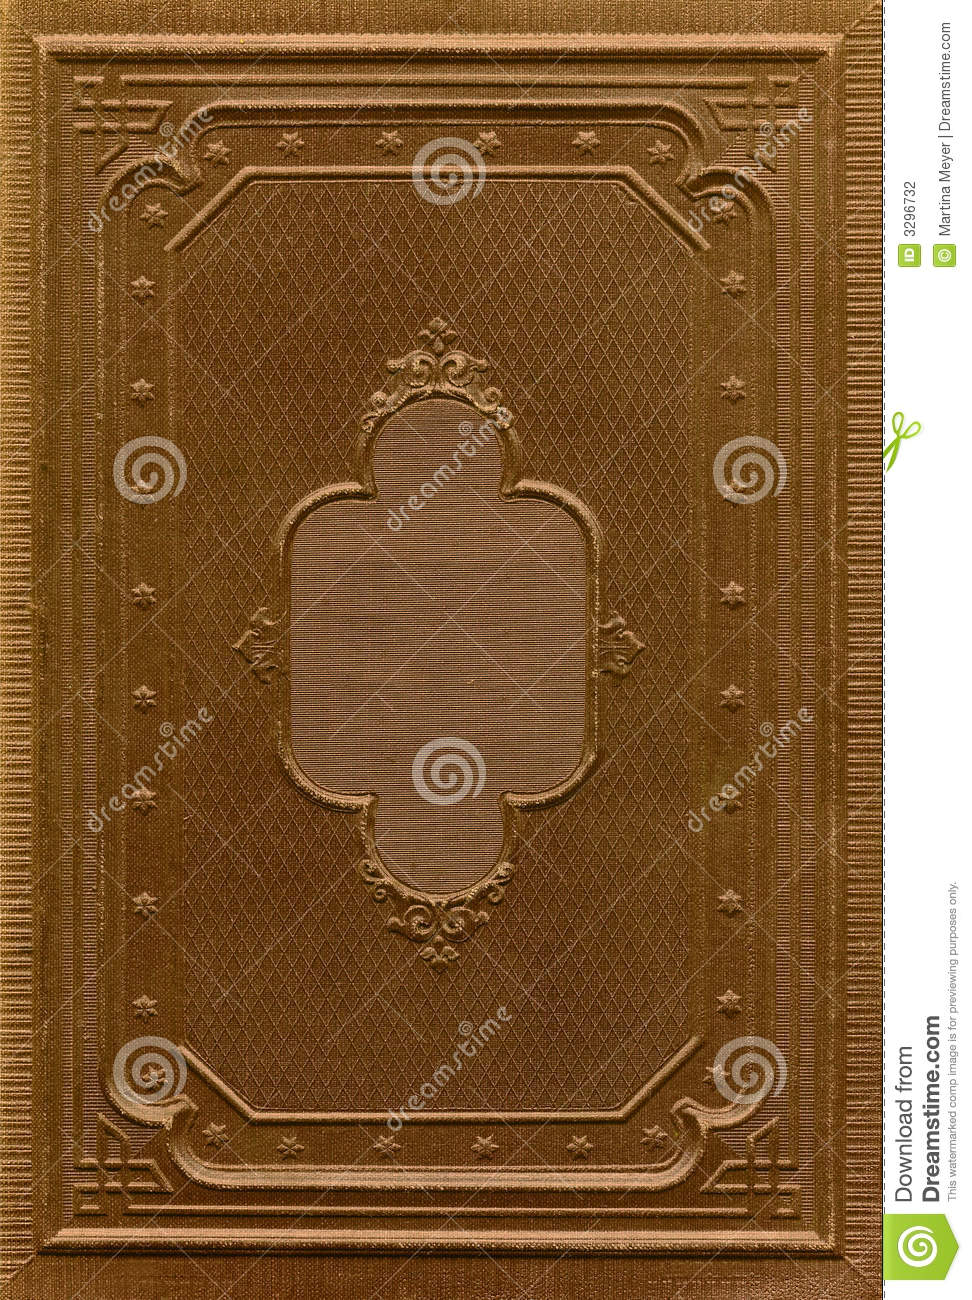 Antique Book Cover Stock Photo Image Of Design Front